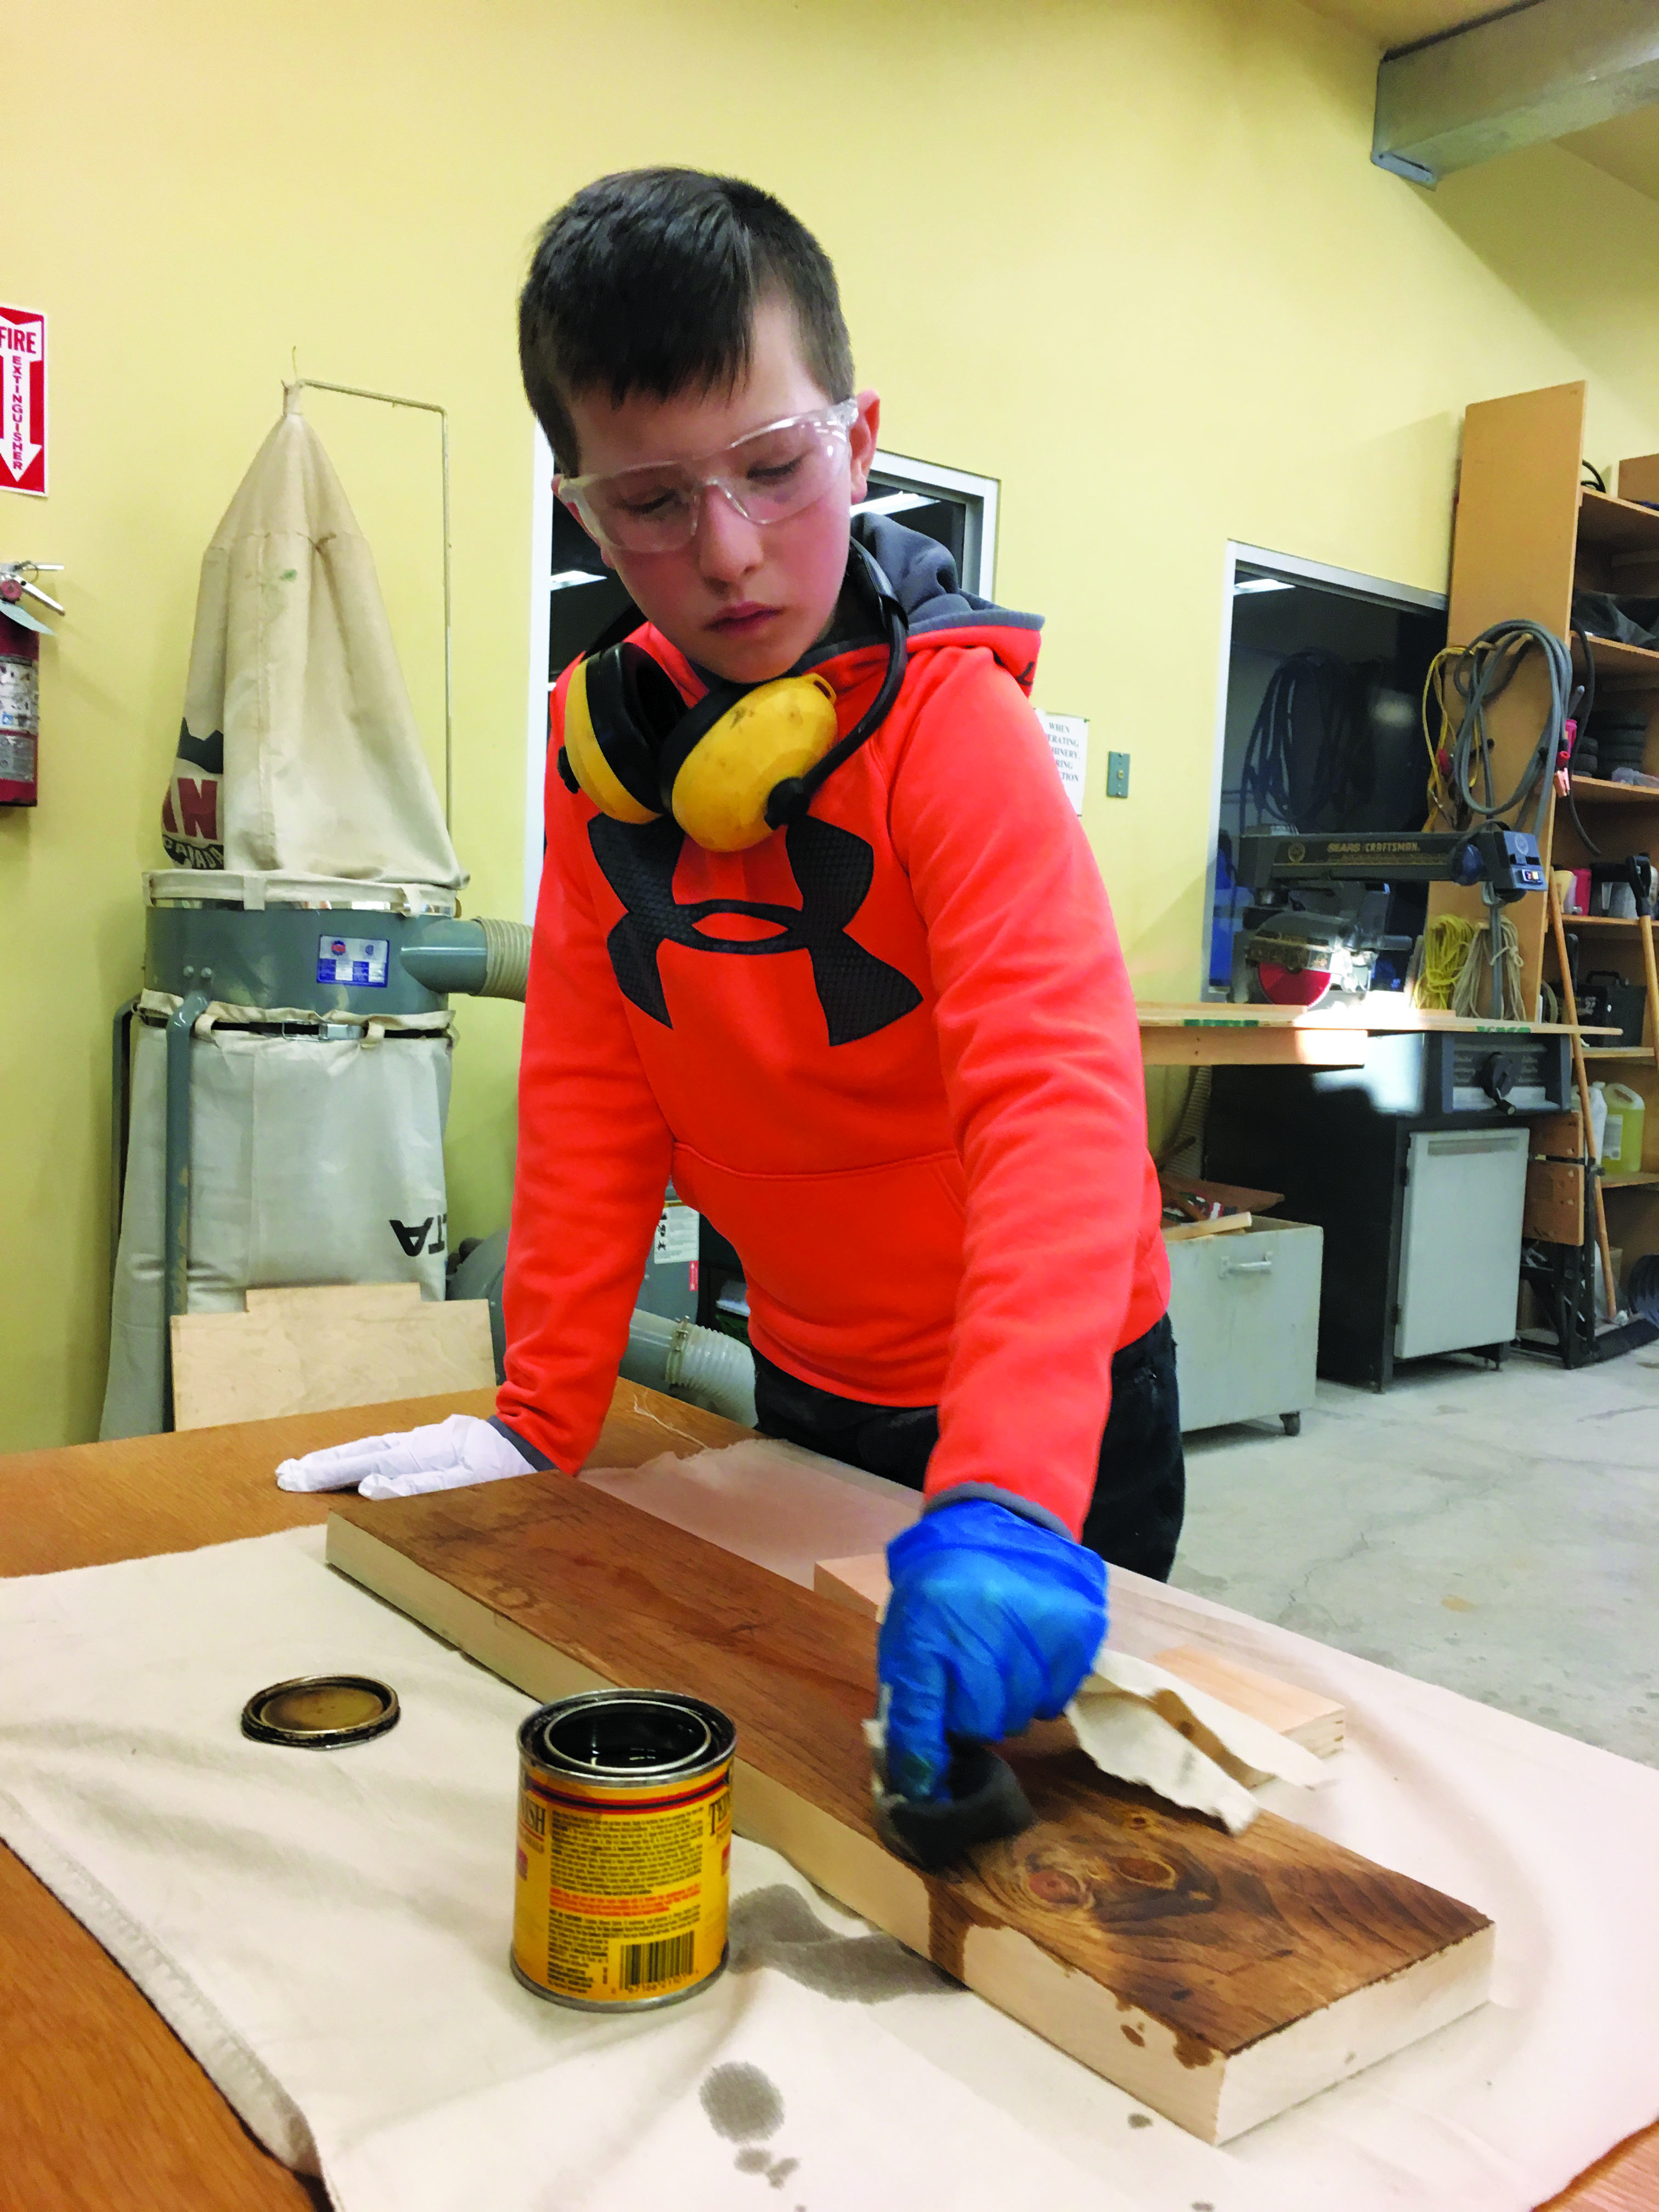 Boy staining plank of wood.